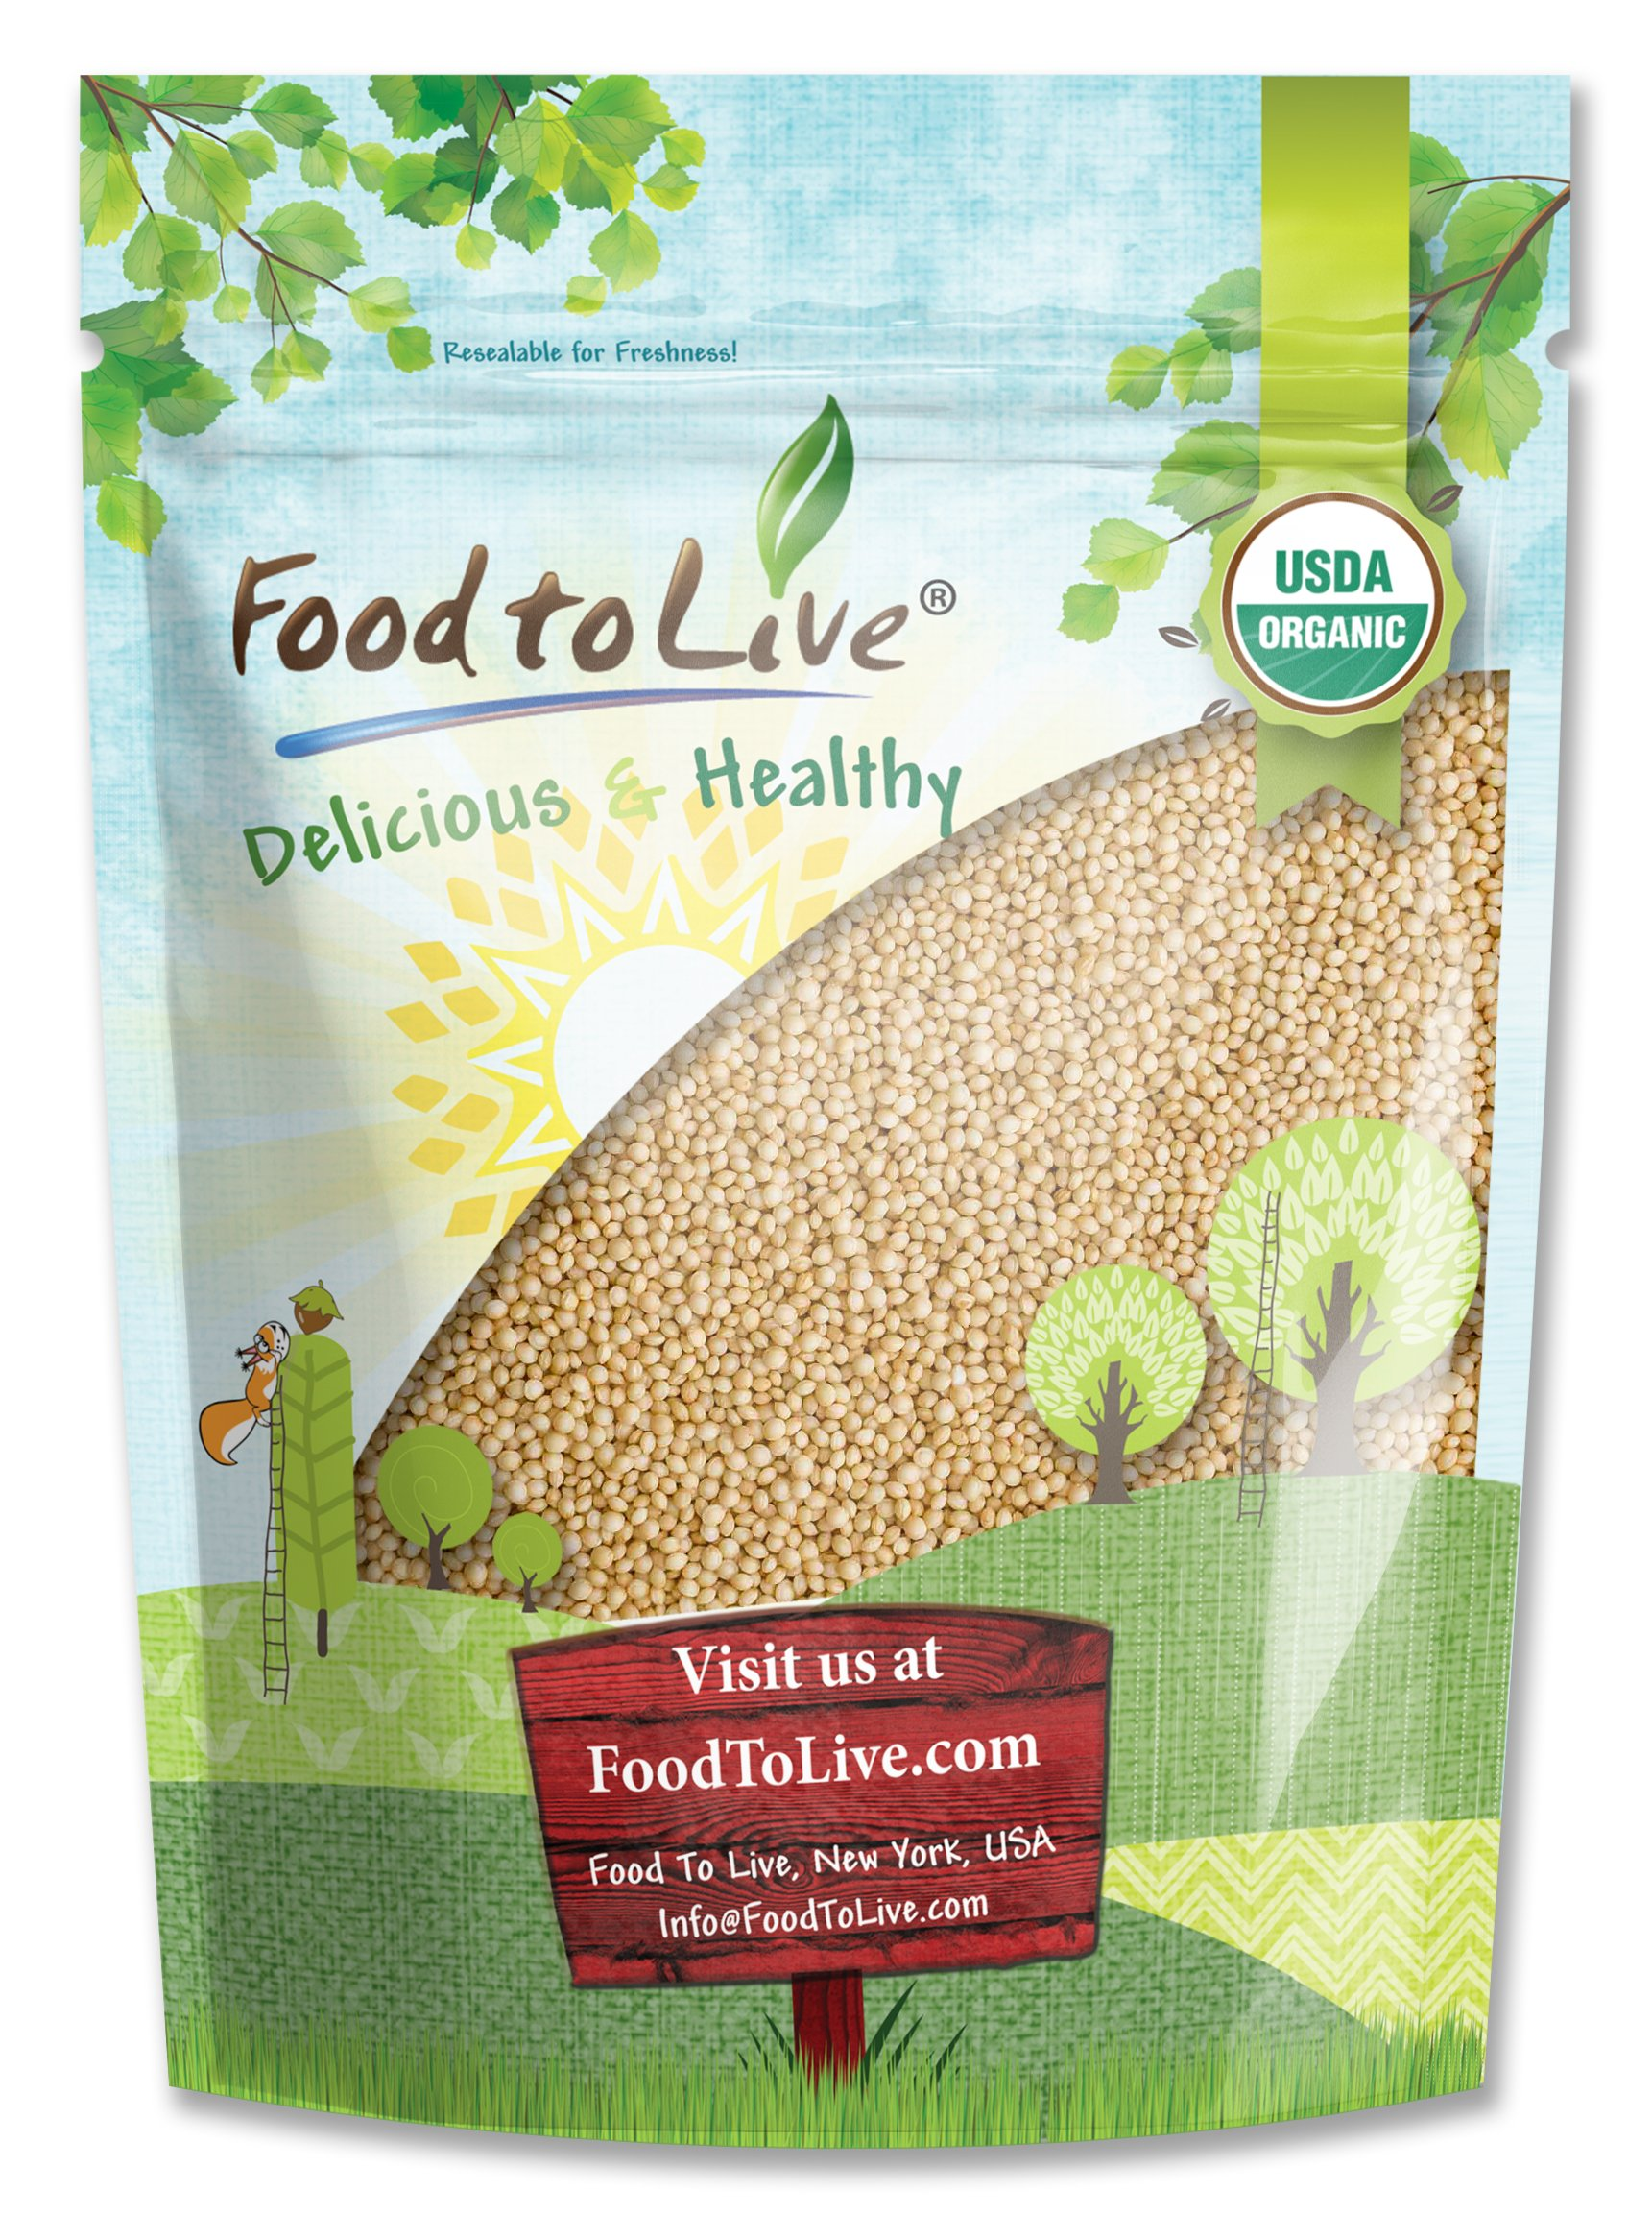 Food to Live Certified Organic Amaranth Grain (Whole Seeds, Non-GMO, Kosher, Bulk) (1 Pound)